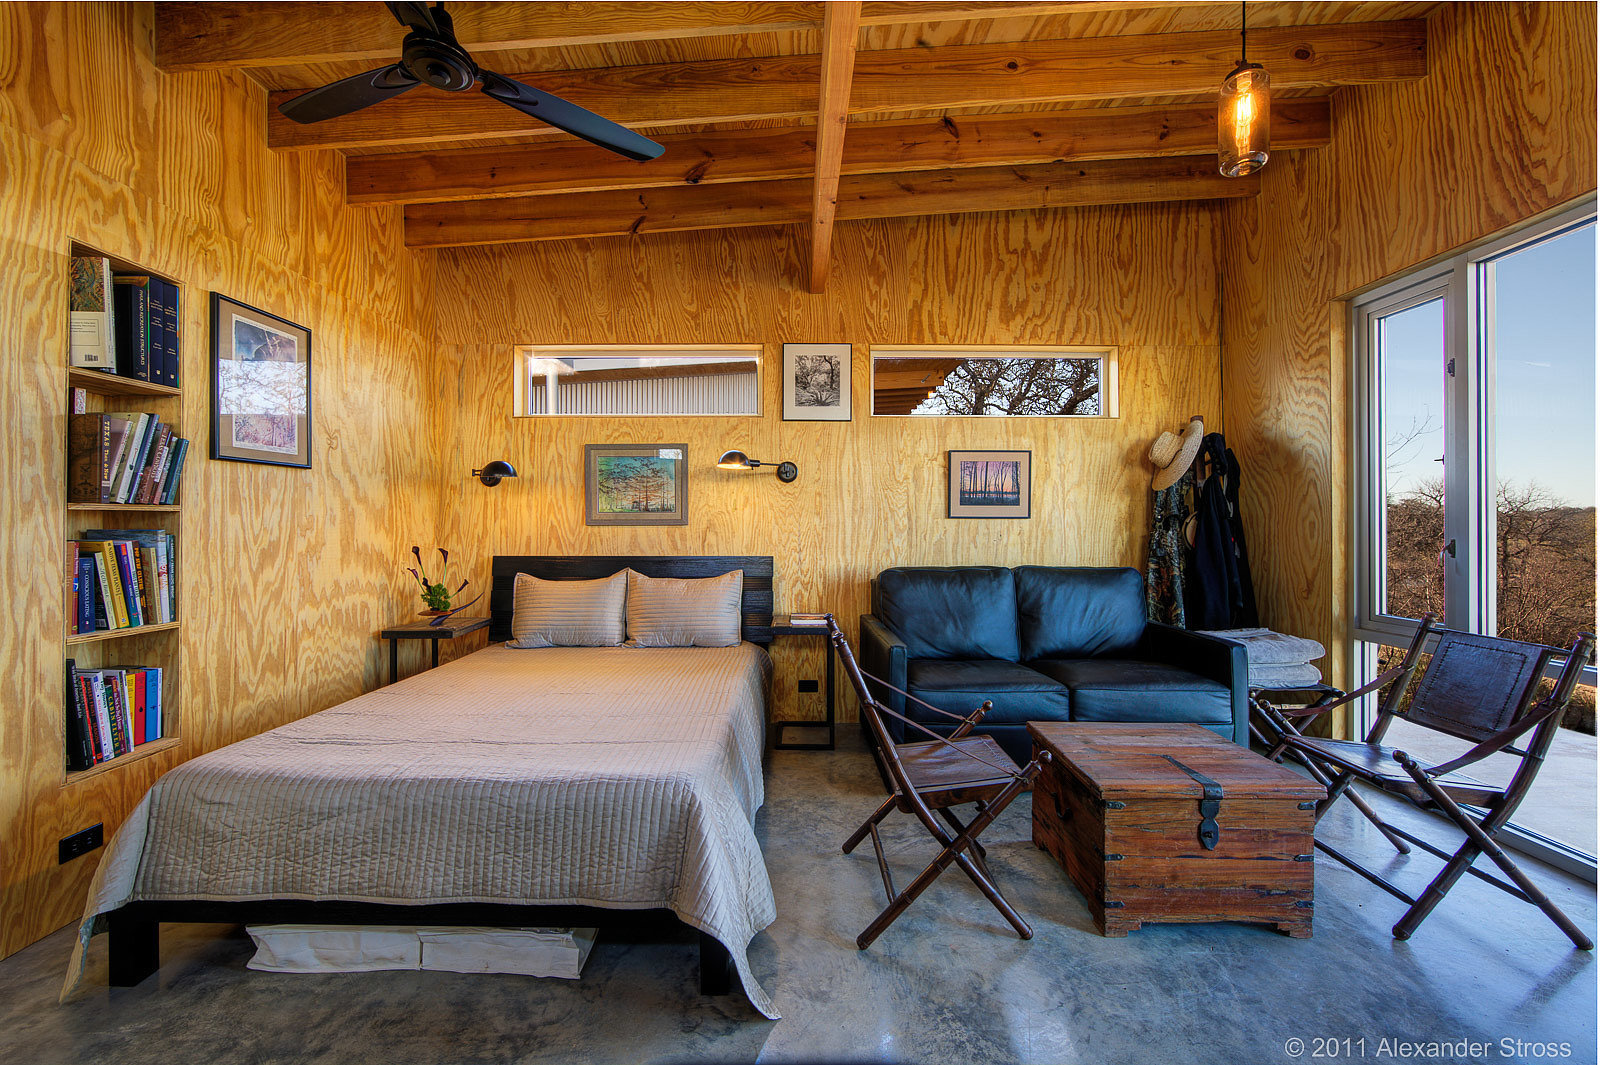 The cabin interiors are a blend of rustic and modern design bestie row takes the small Modern cabin interior design